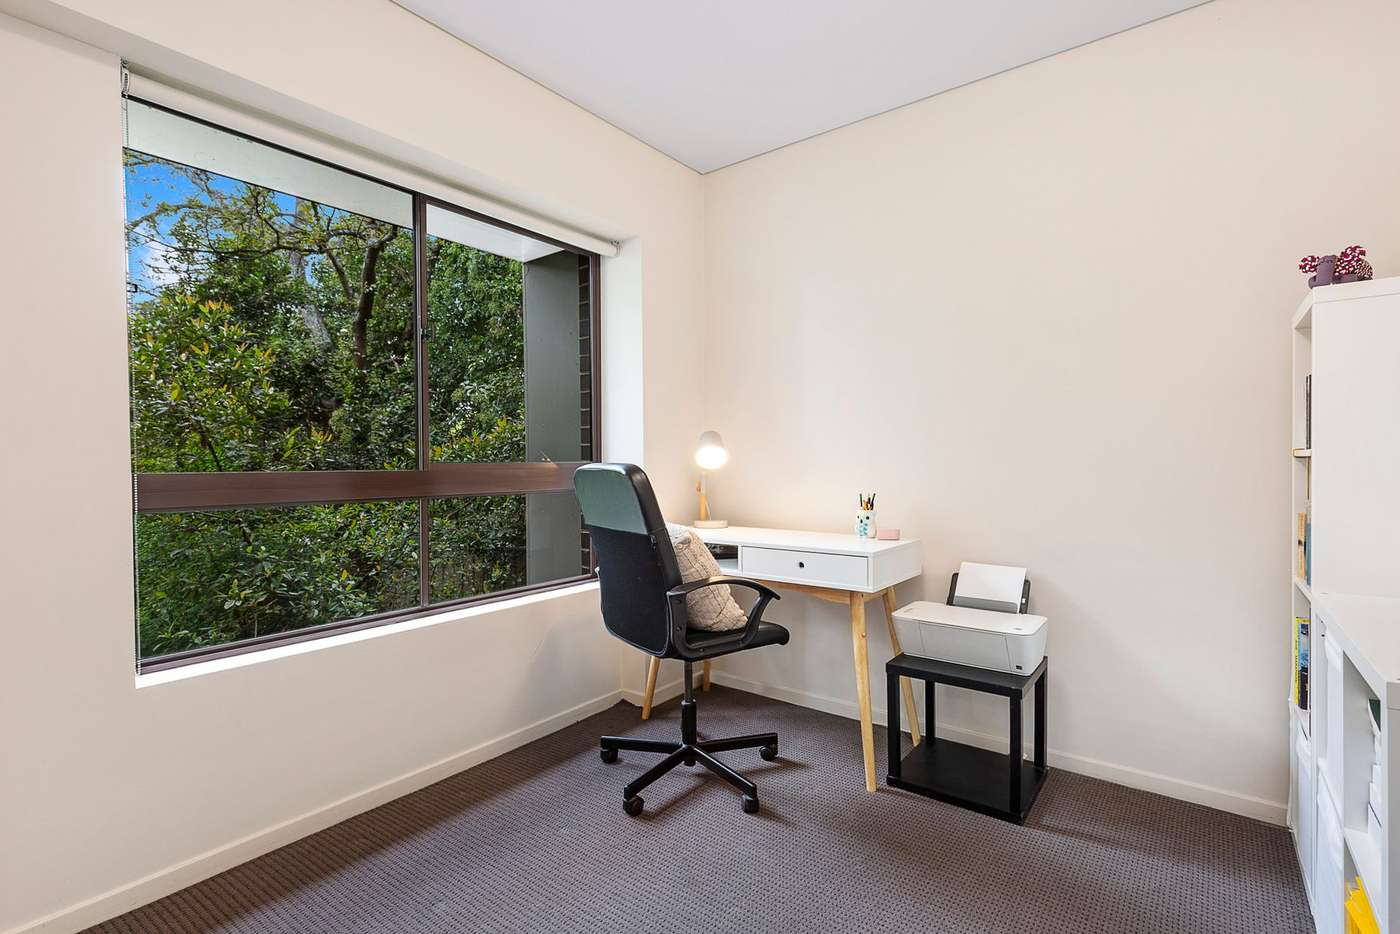 Sixth view of Homely unit listing, 25/6-8 Banksia Rd, Caringbah NSW 2229